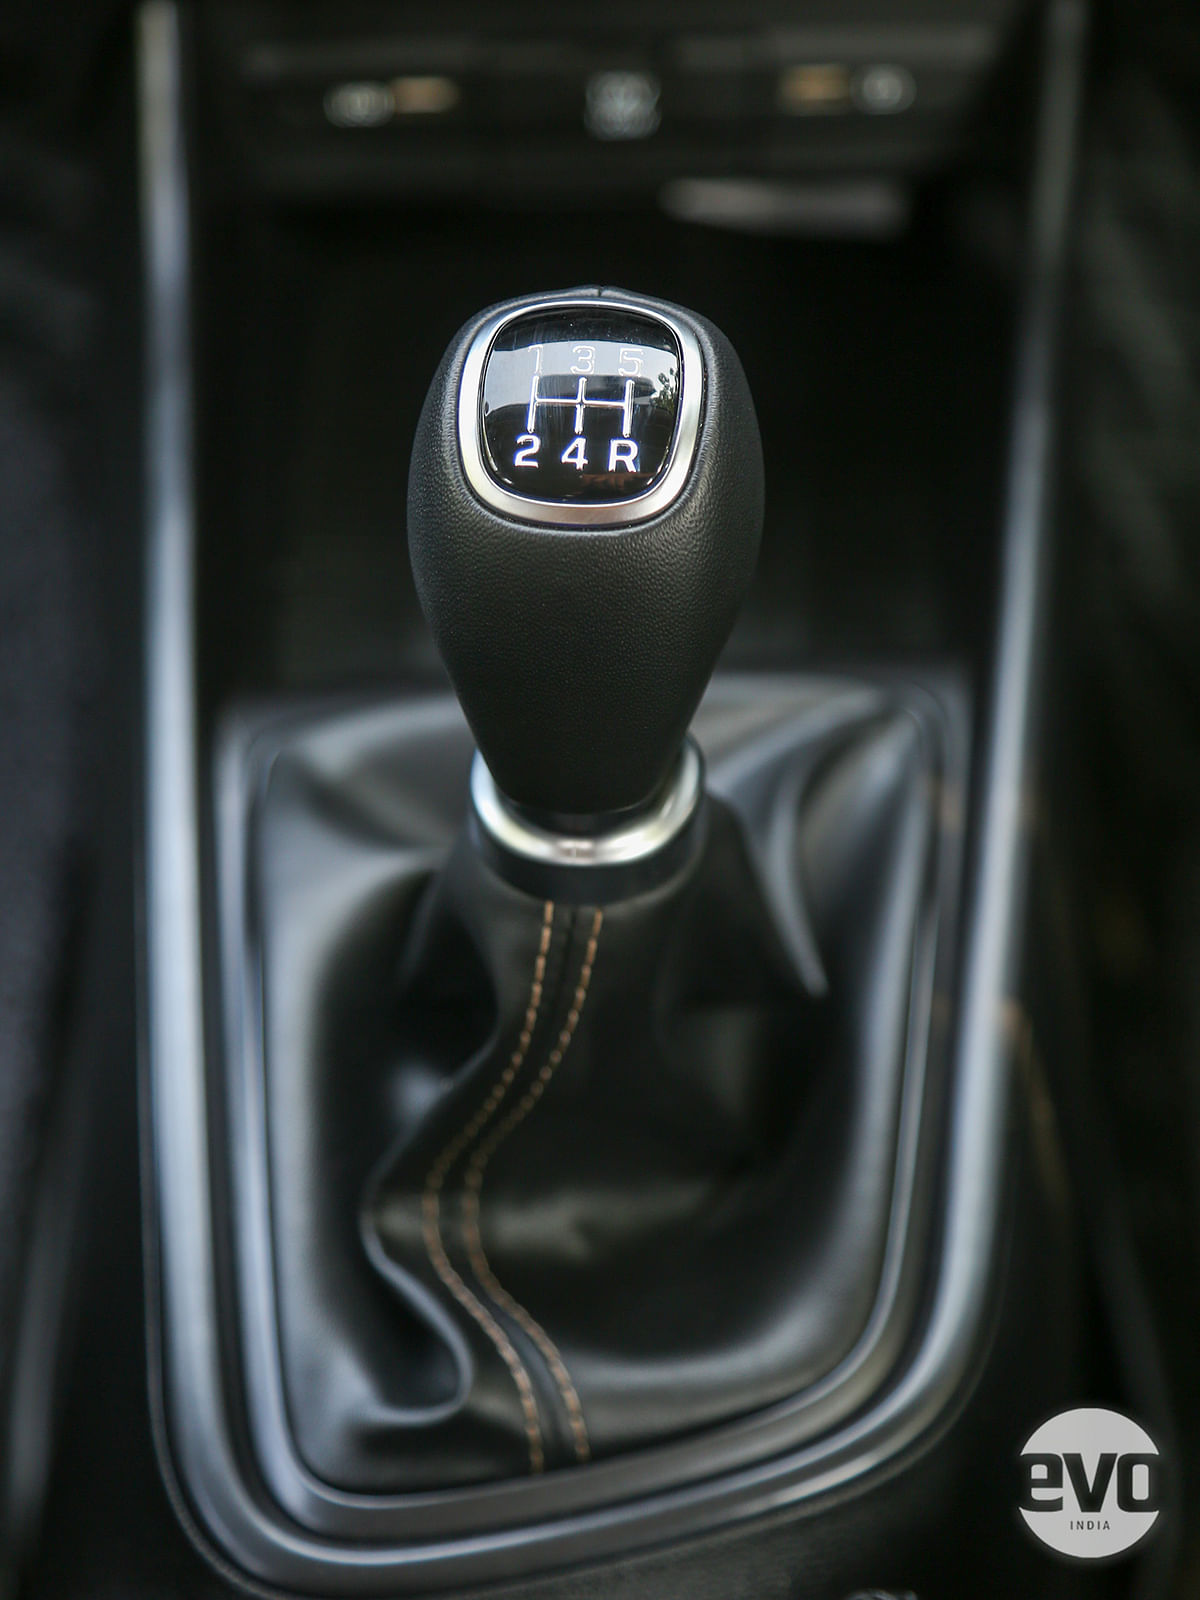 5-speed manual gearbox